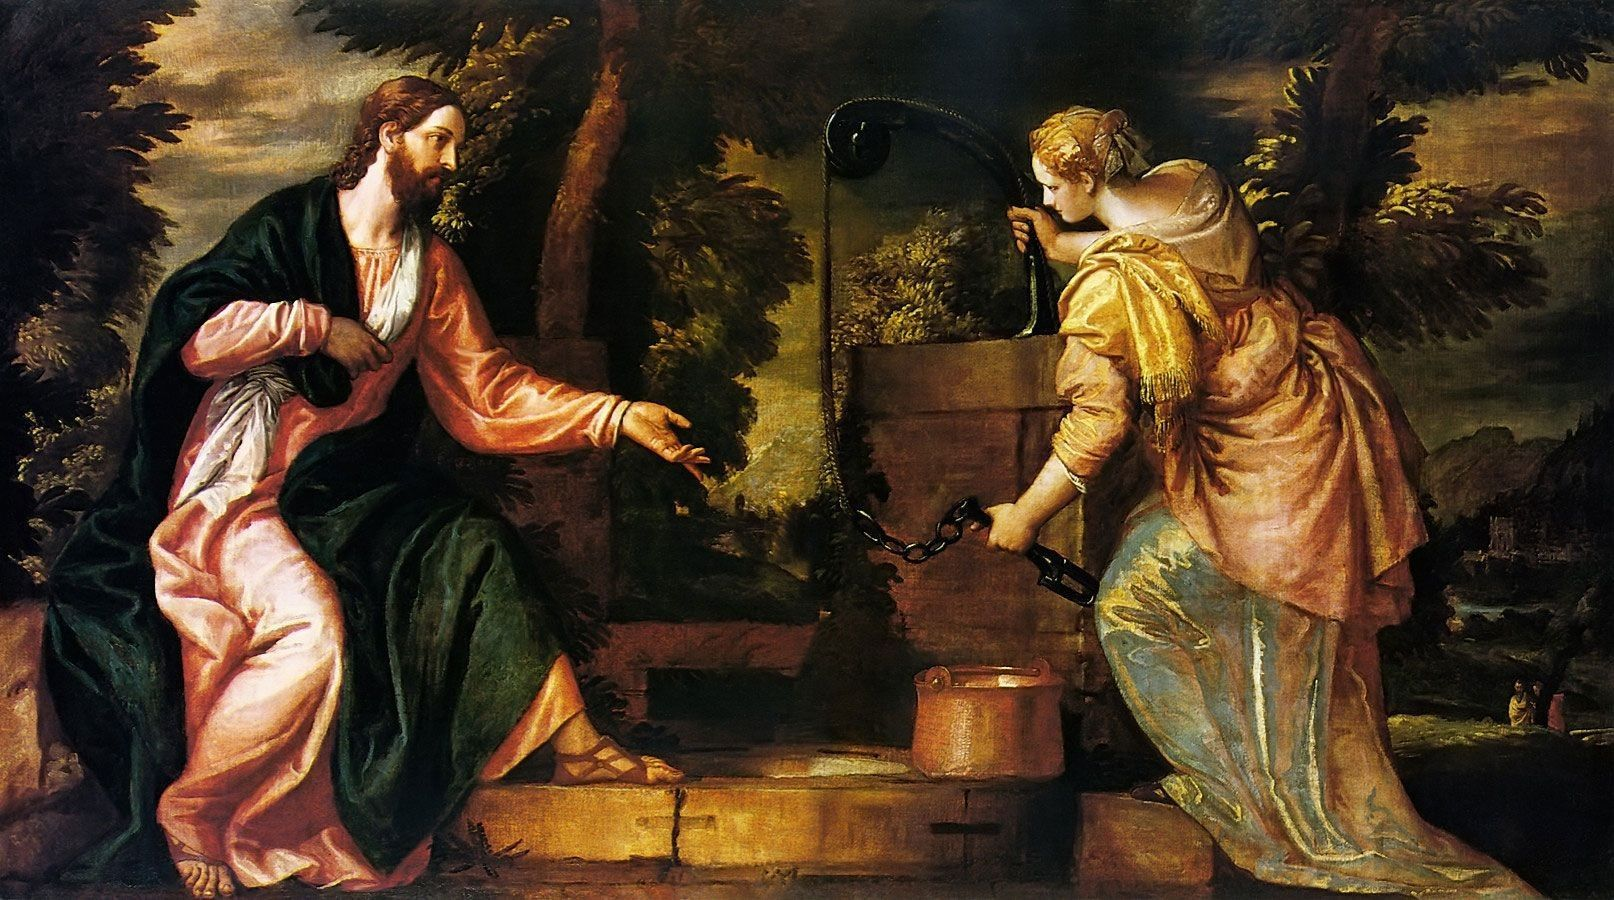 File:Veronese.Jesus and the Samaritan Woman01.jpg